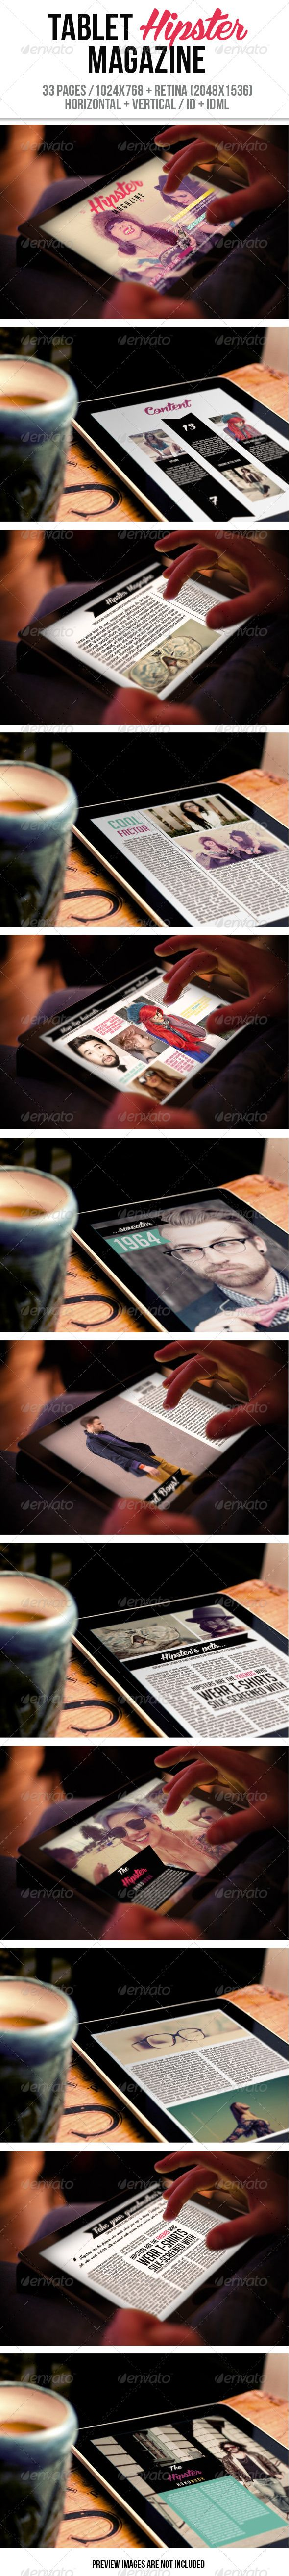 iPad & Tablet Hipster Magazine - #Digital #Magazines #ePublishing Download here: https://graphicriver.net/item/ipad-tablet-hipster-magazine/6278015?ref=alena994